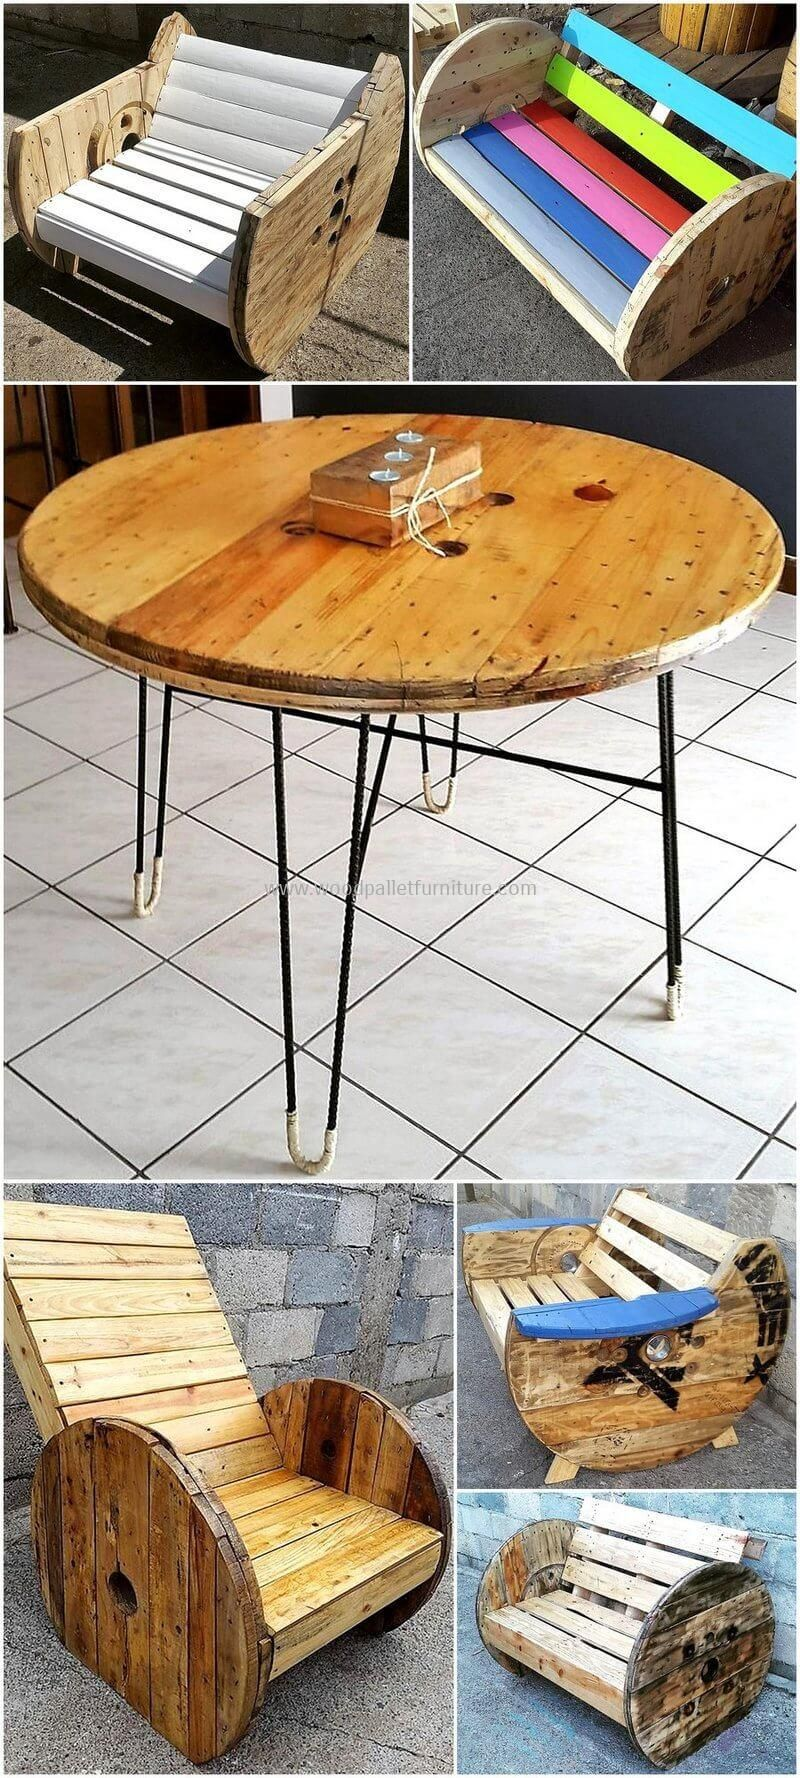 Insanely smart reclaimed wood pallet projects wood pallets cable